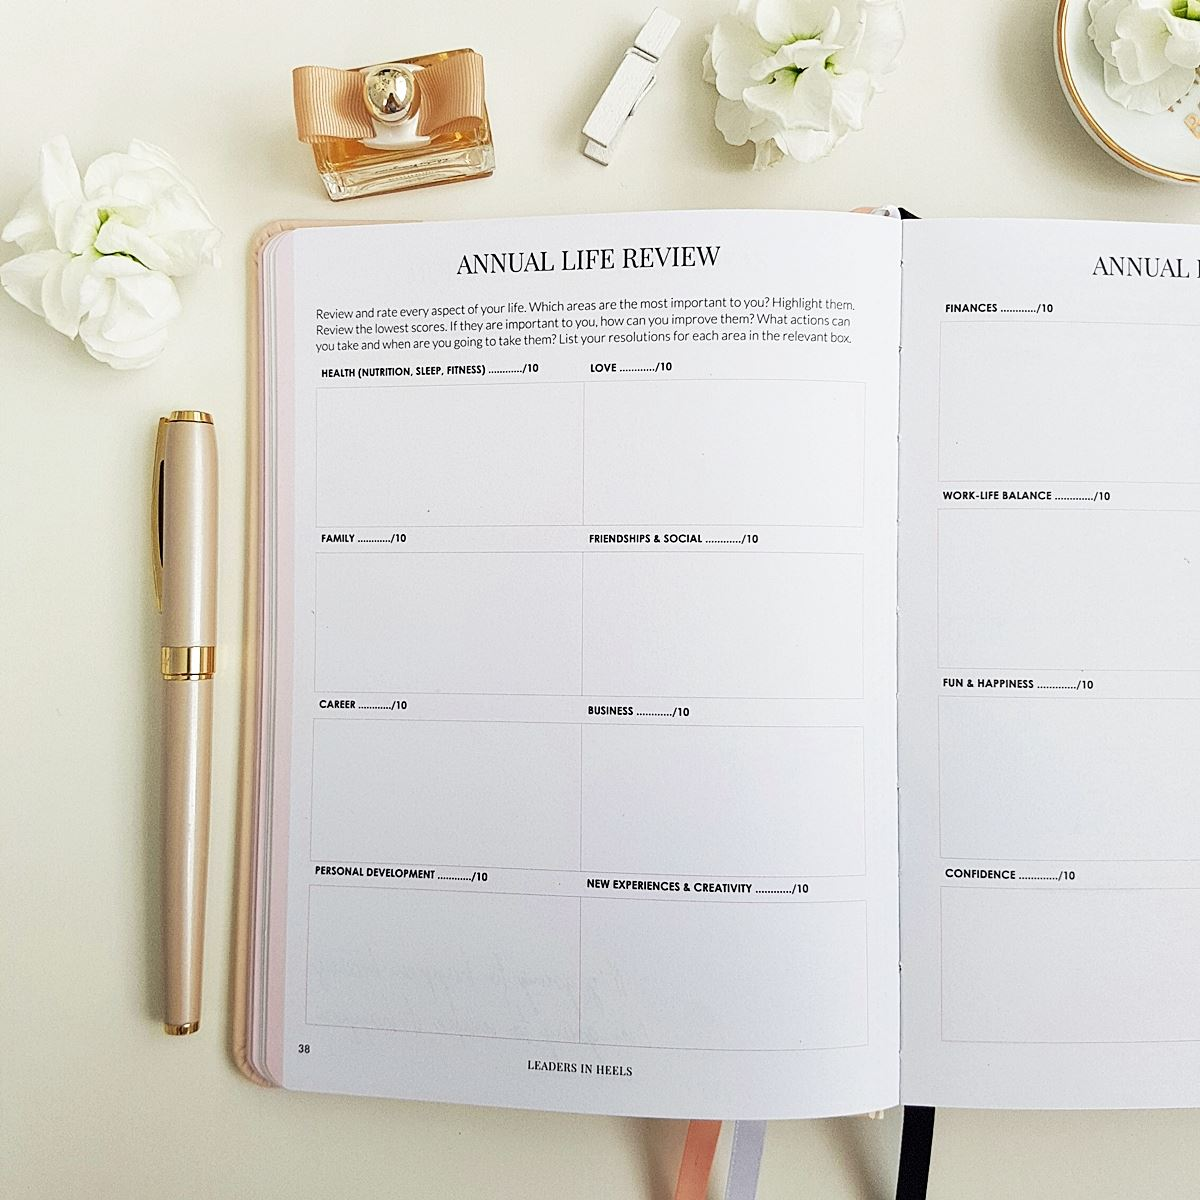 The Leaders in Heels Planner Make It Happen - Annual Life Review